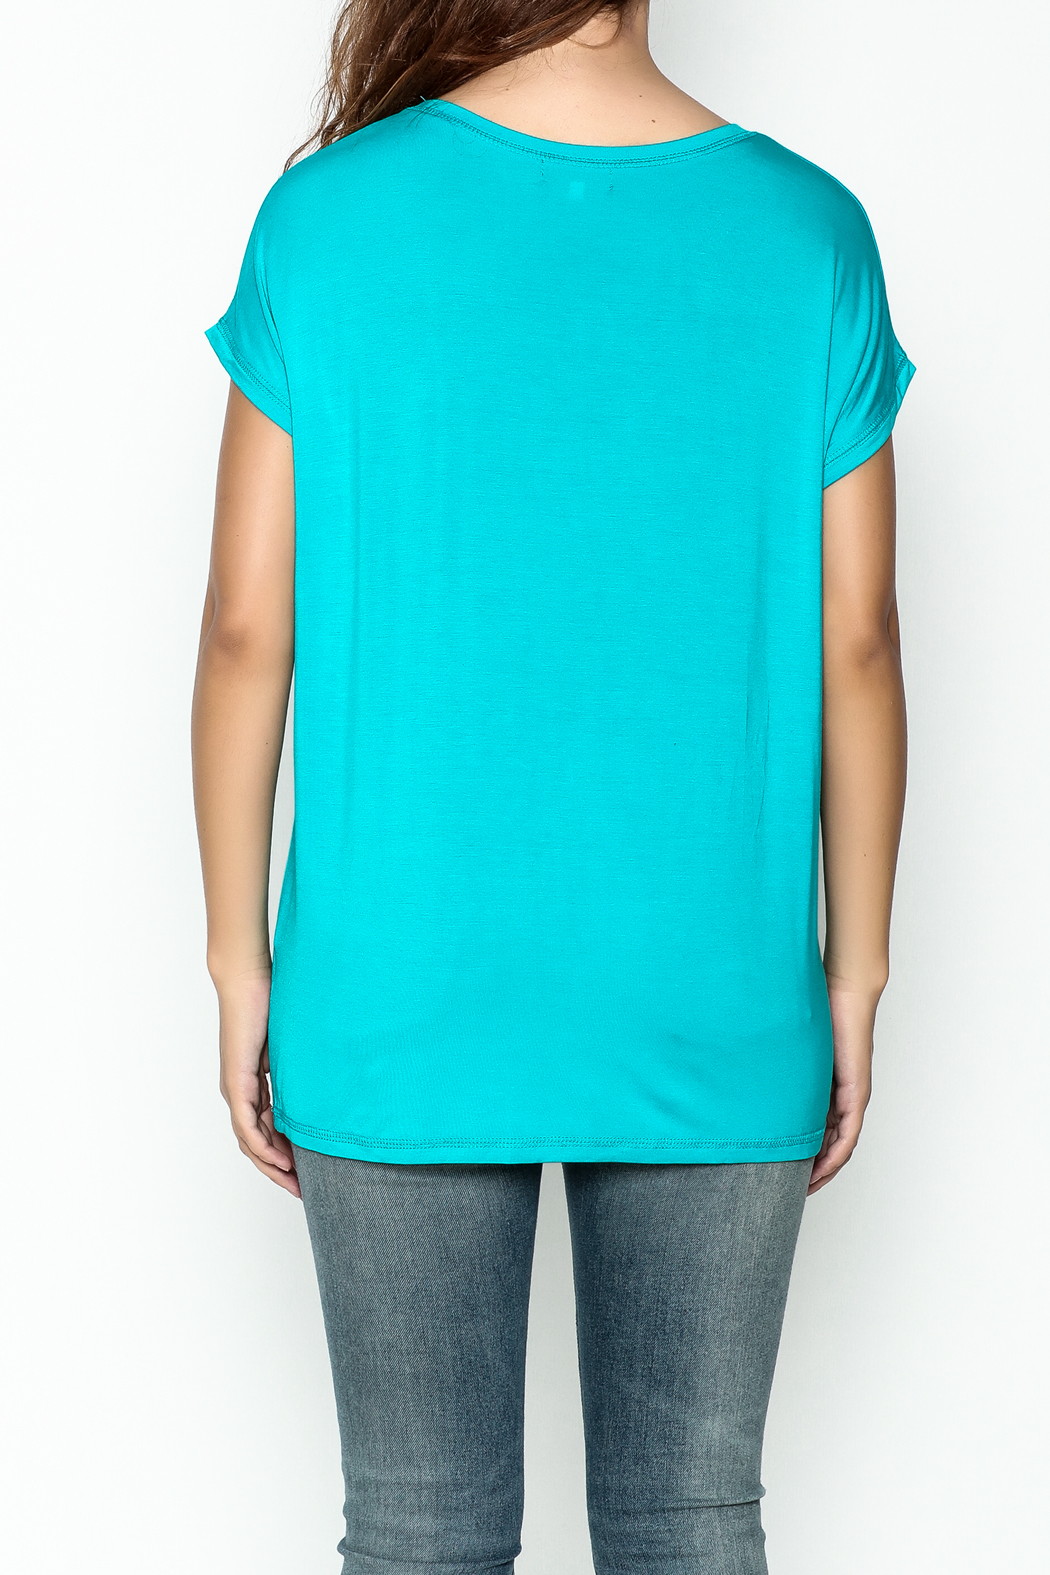 Piko  Bright Blue Top - Back Cropped Image